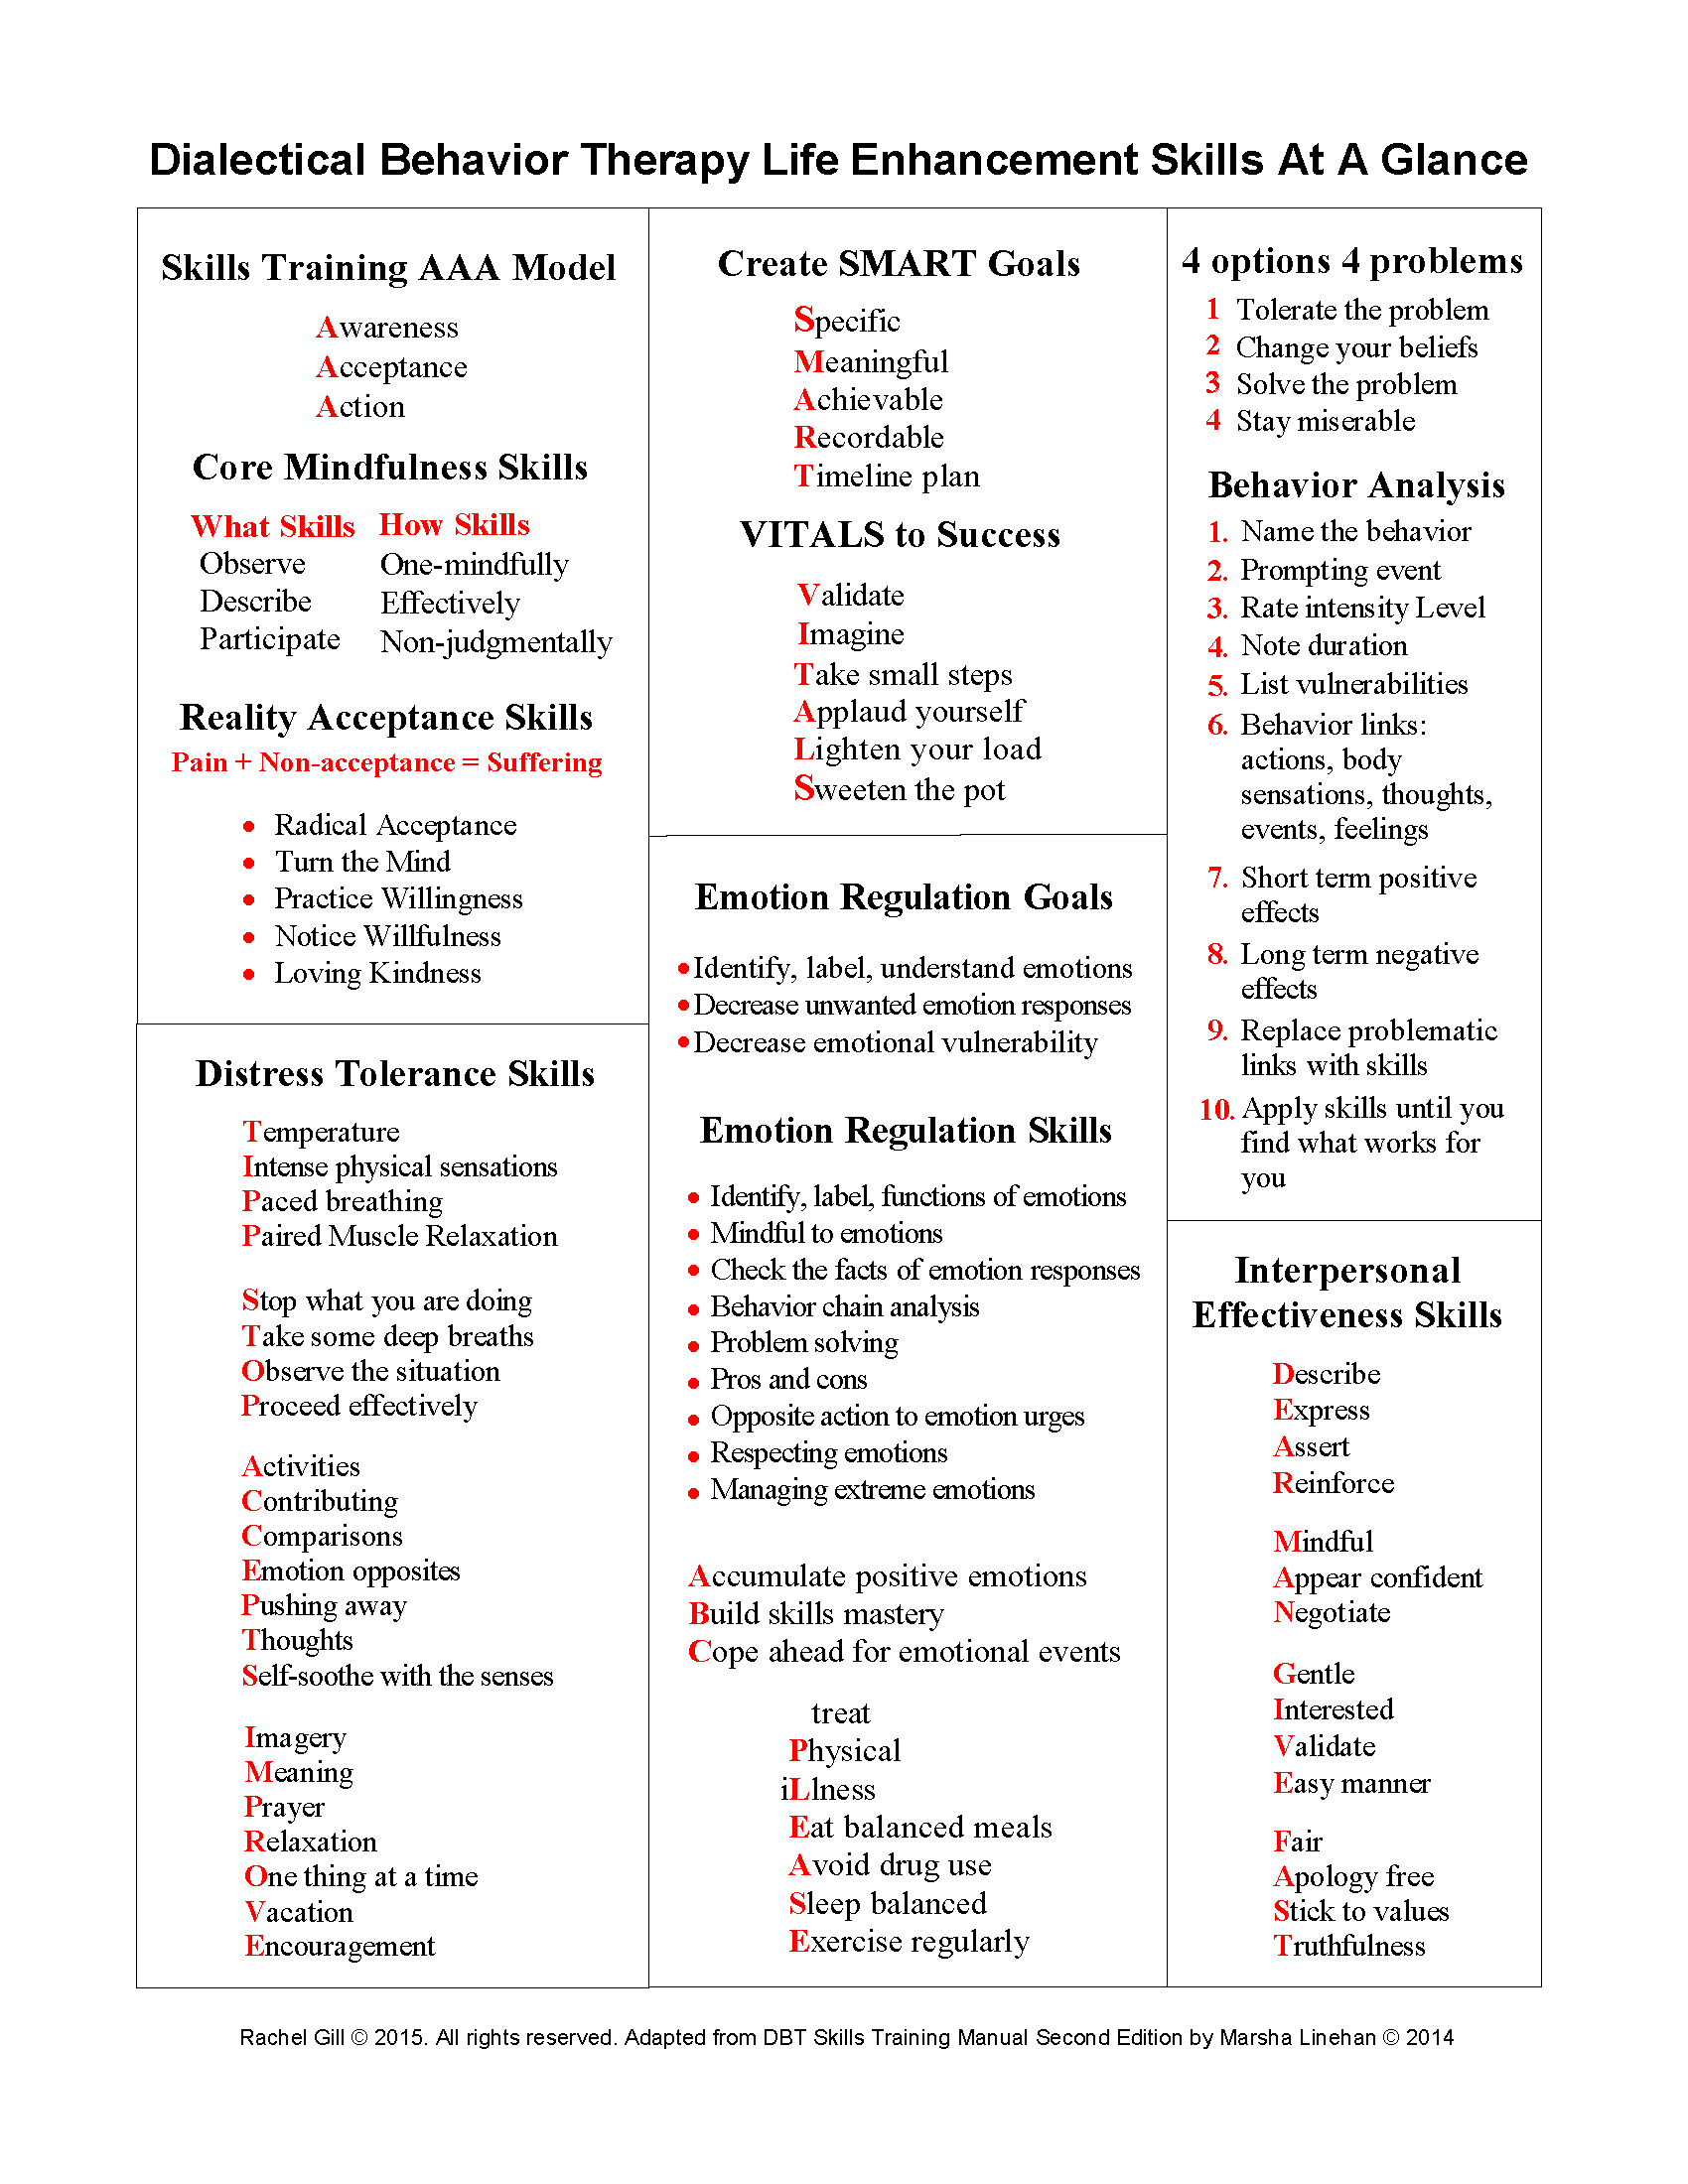 Interpersonal Relationship Skills Worksheet